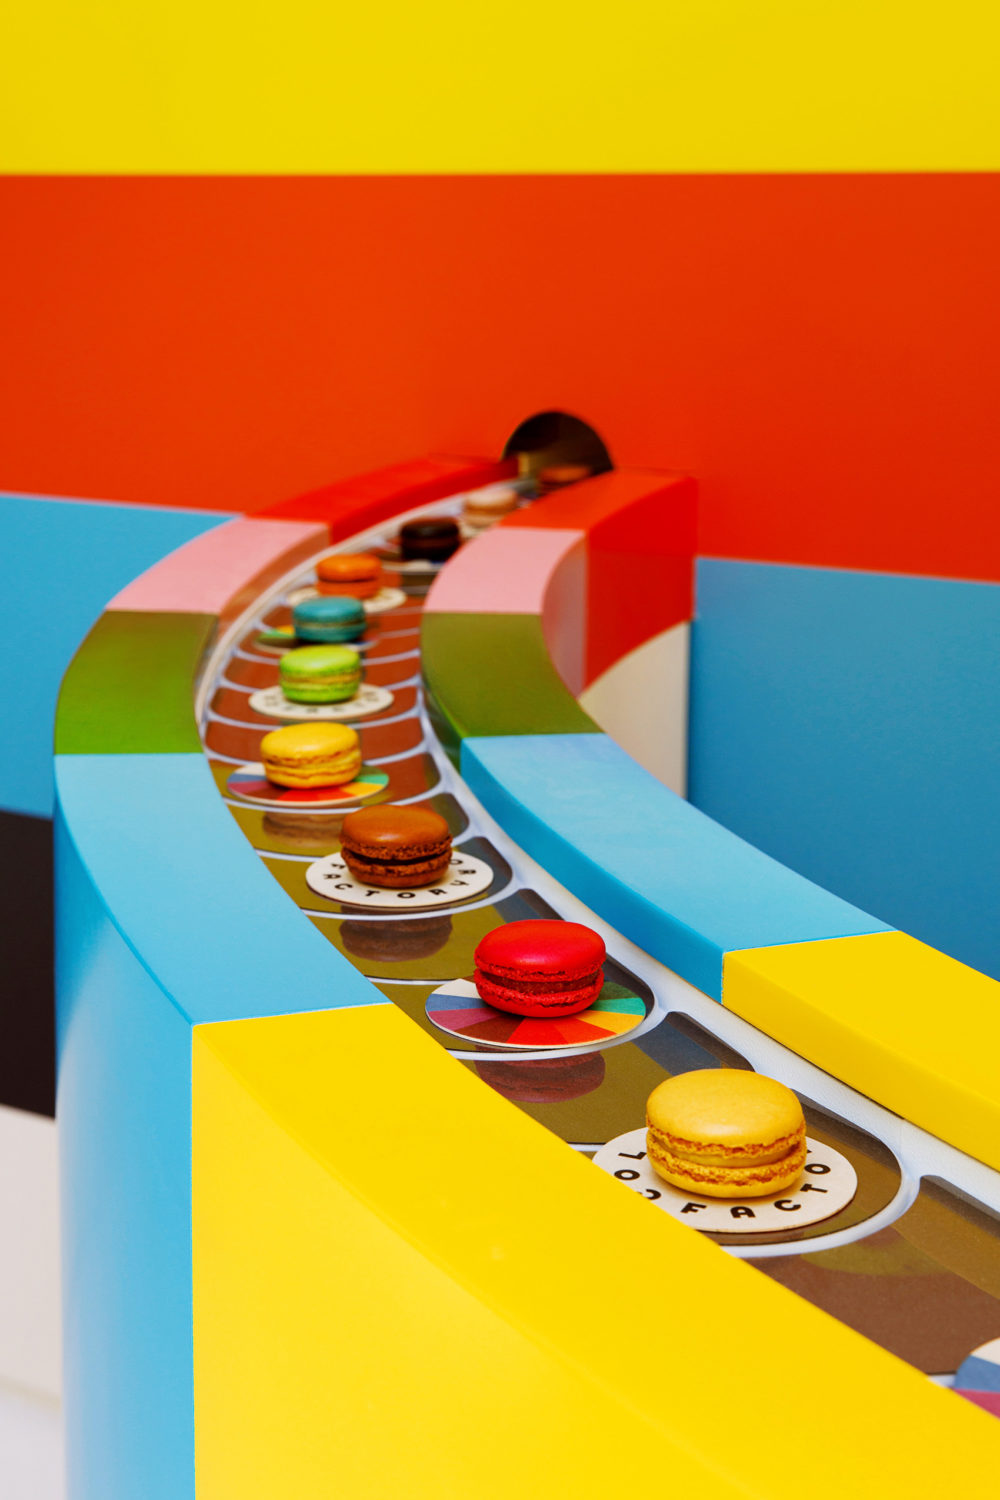 The Willy Wonka-like carousel of macaroons inside the Color Factory. (Courtesy of the Color Factory)